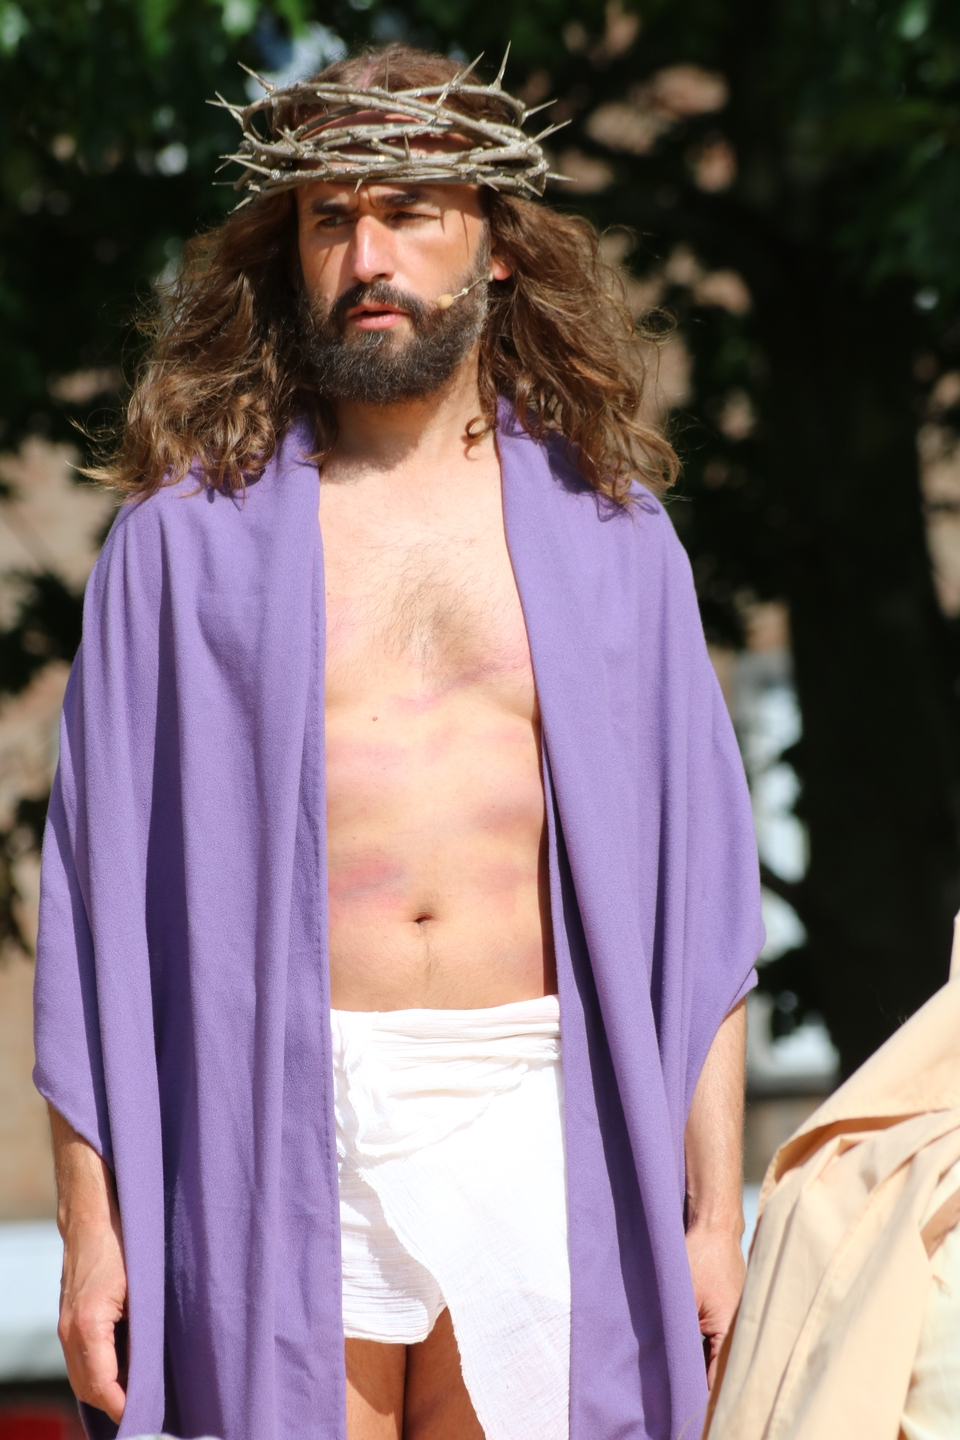 James Burke-Dunsmore as Jesus is crowned with thorns as he prepares to face the cross